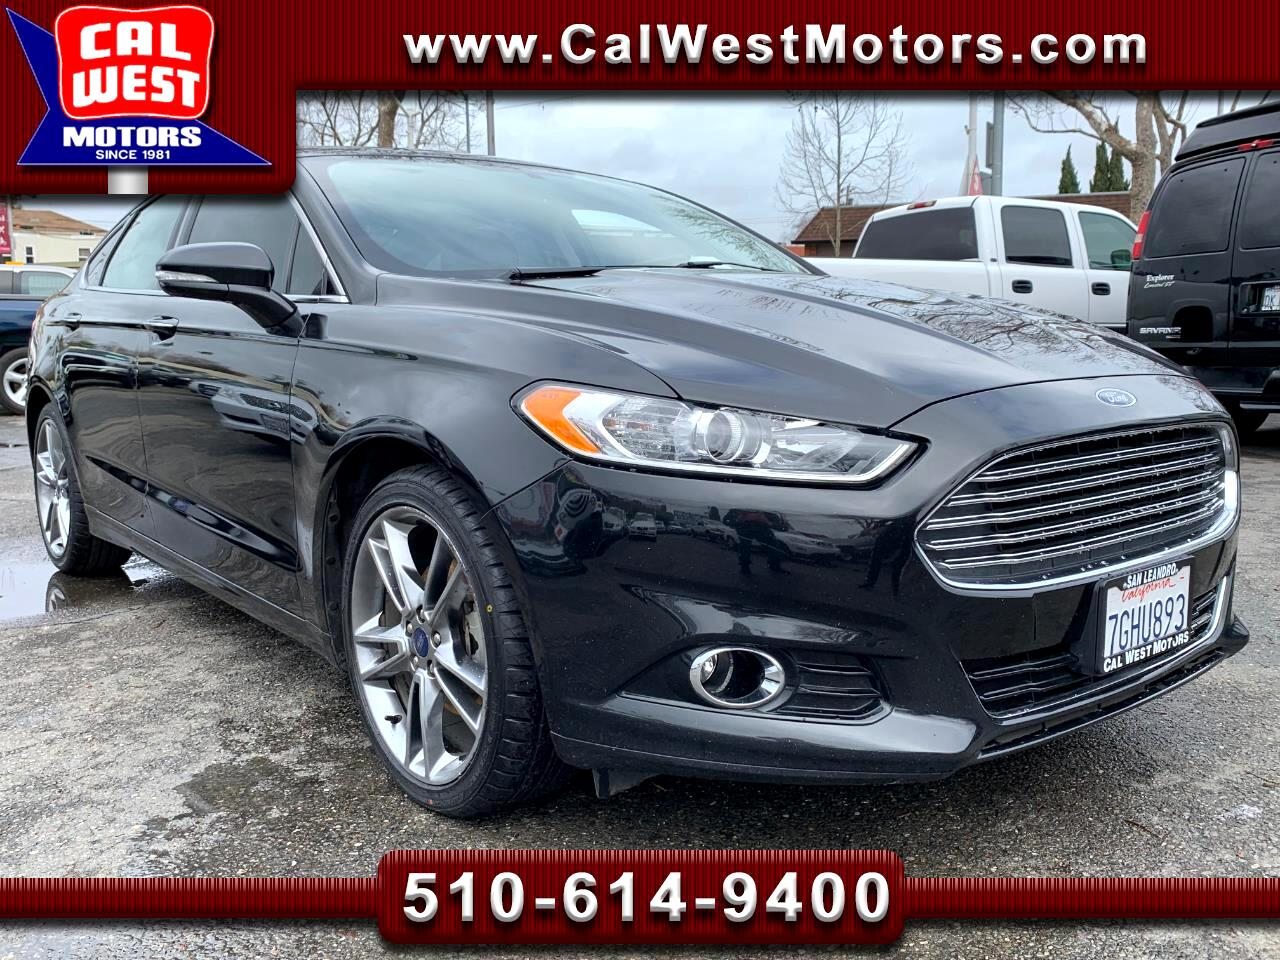 Used 2014 Ford Fusion For Sale In San Leandro Ca 94577 Cal West Motors